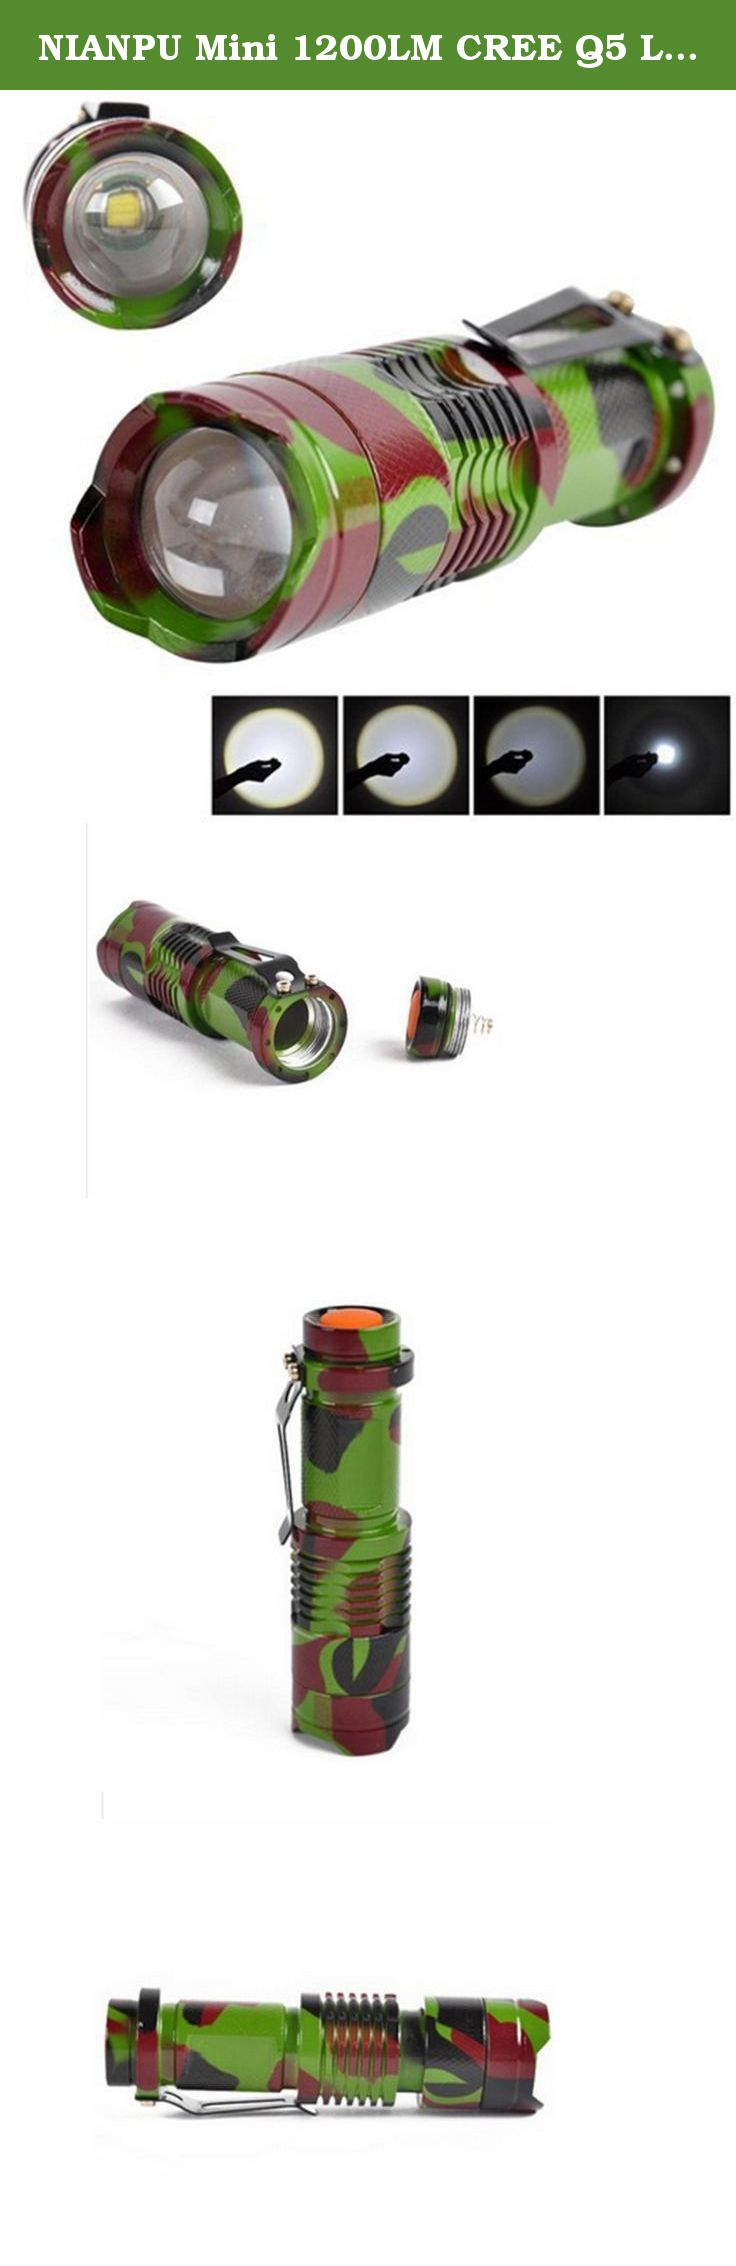 NIANPU Mini 1200LM CREE Q5 LED Zoomable 3 Modes Flashlight Hiking Camouflage. With a mini palm size and steel body clip, it's convenient to carry . Skid-proof design , waterproof design . With adjustable focus, support zoom in and zoom out. A perfect item for hiking and mountaineering outdoor sports. Power Source: 1x14500 or 1 x AA Battery (Not included).